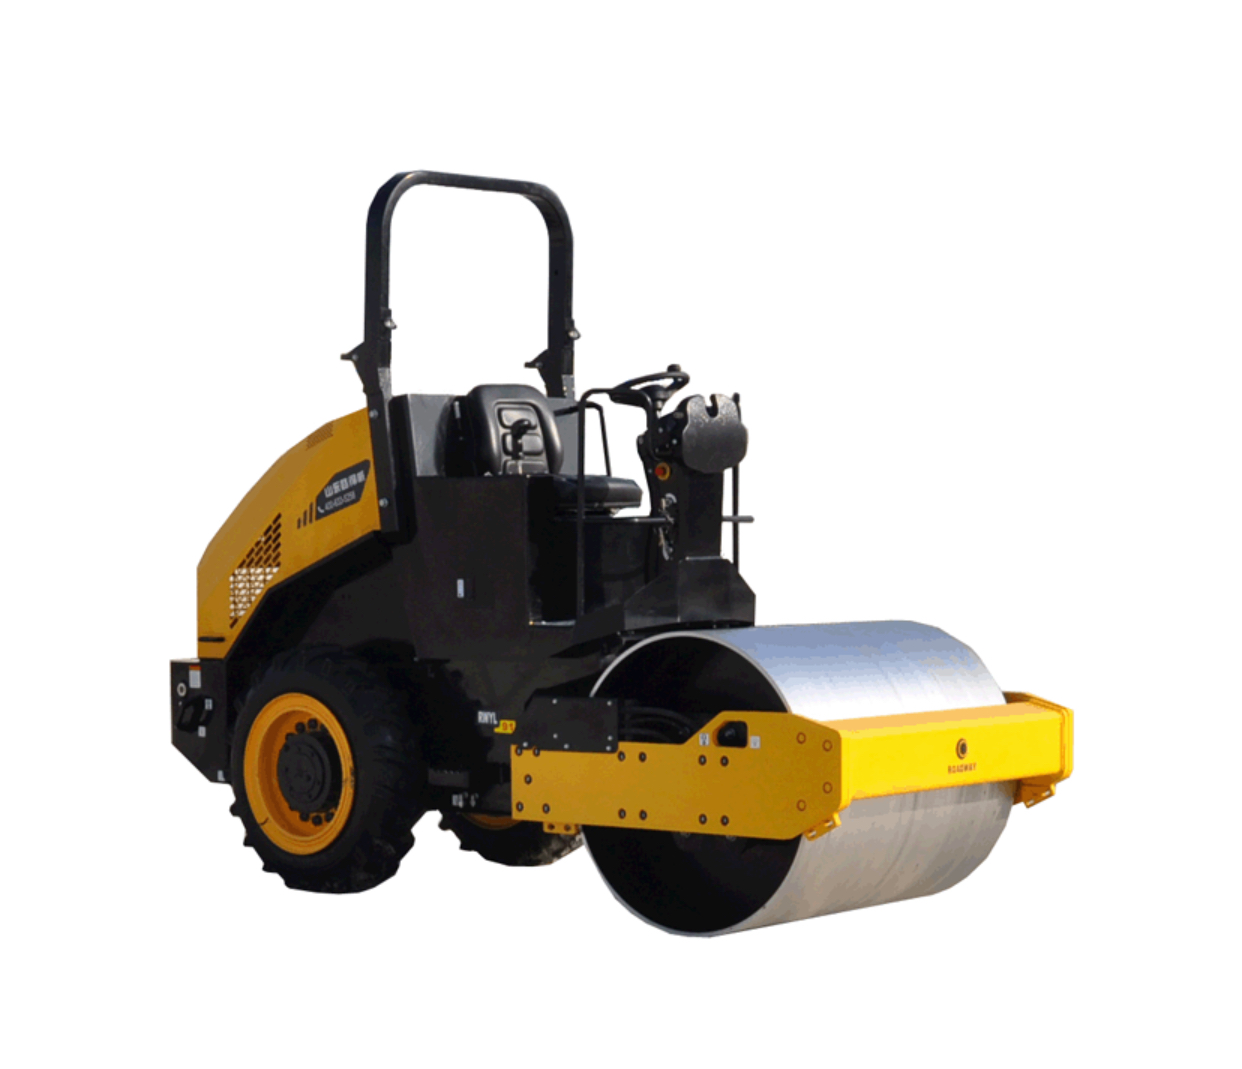 RWYL91N Working weight 3650kg Ride-on Hydraulic Vibratory Road Roller